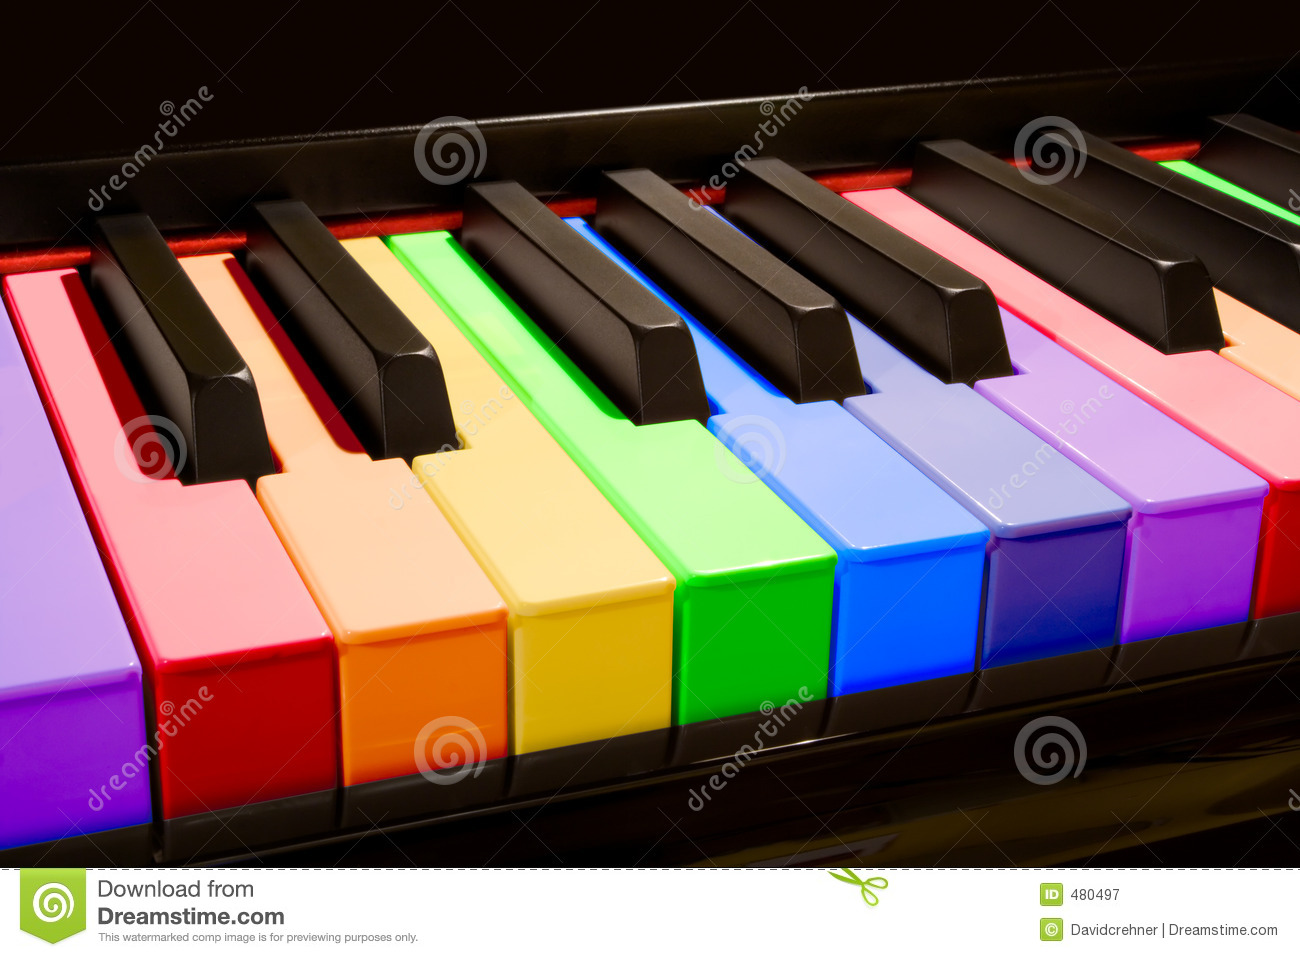 3d Dj Wallpaper Free Download The Rainbow Piano Stock Image Image Of Colour Diverse